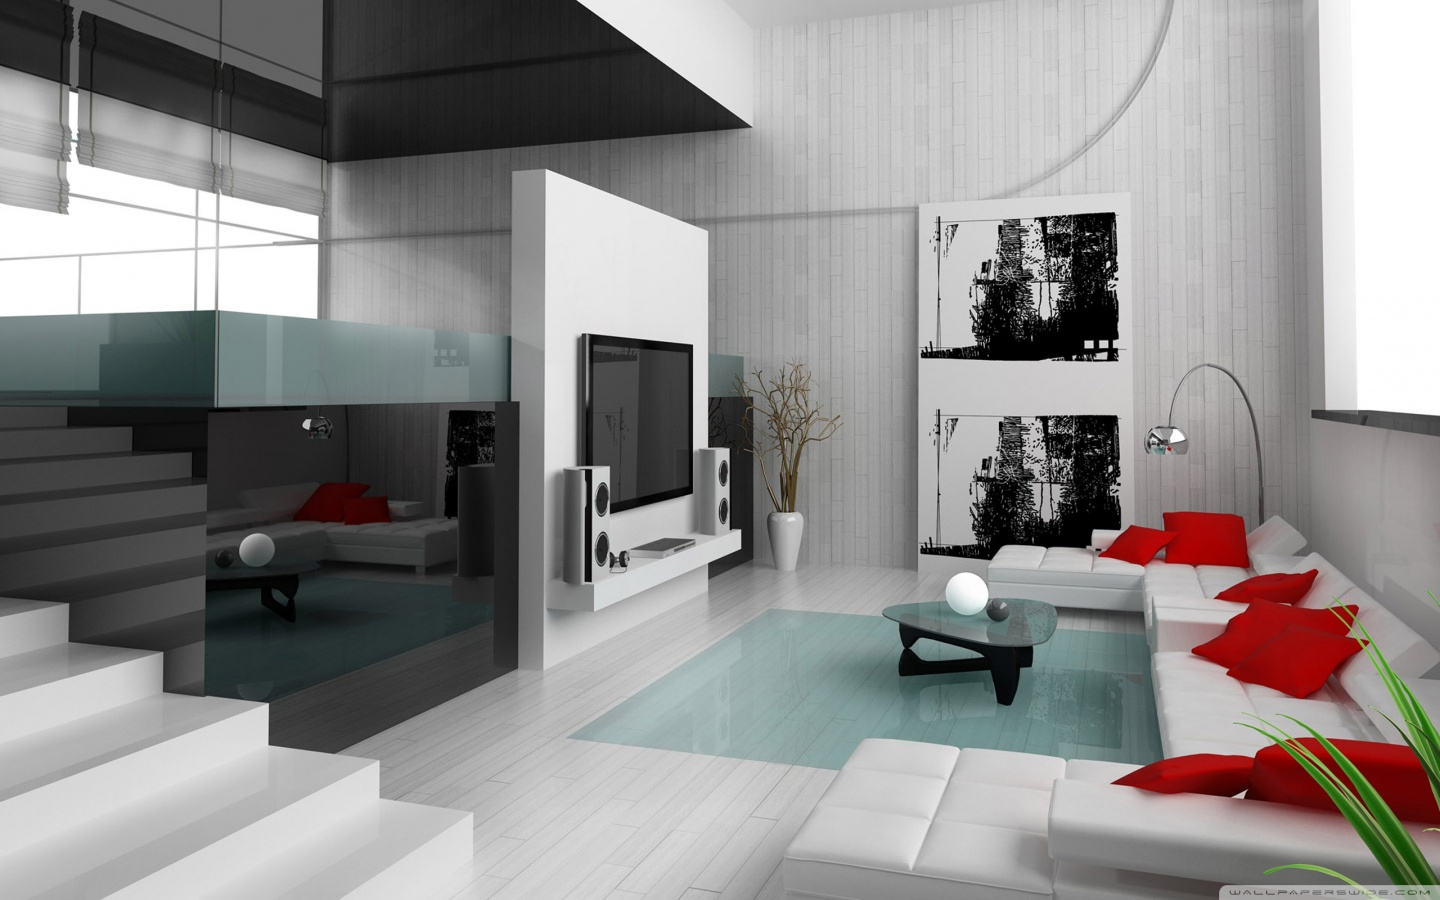 Minimalist interior design imagination art architecture Minimalist design